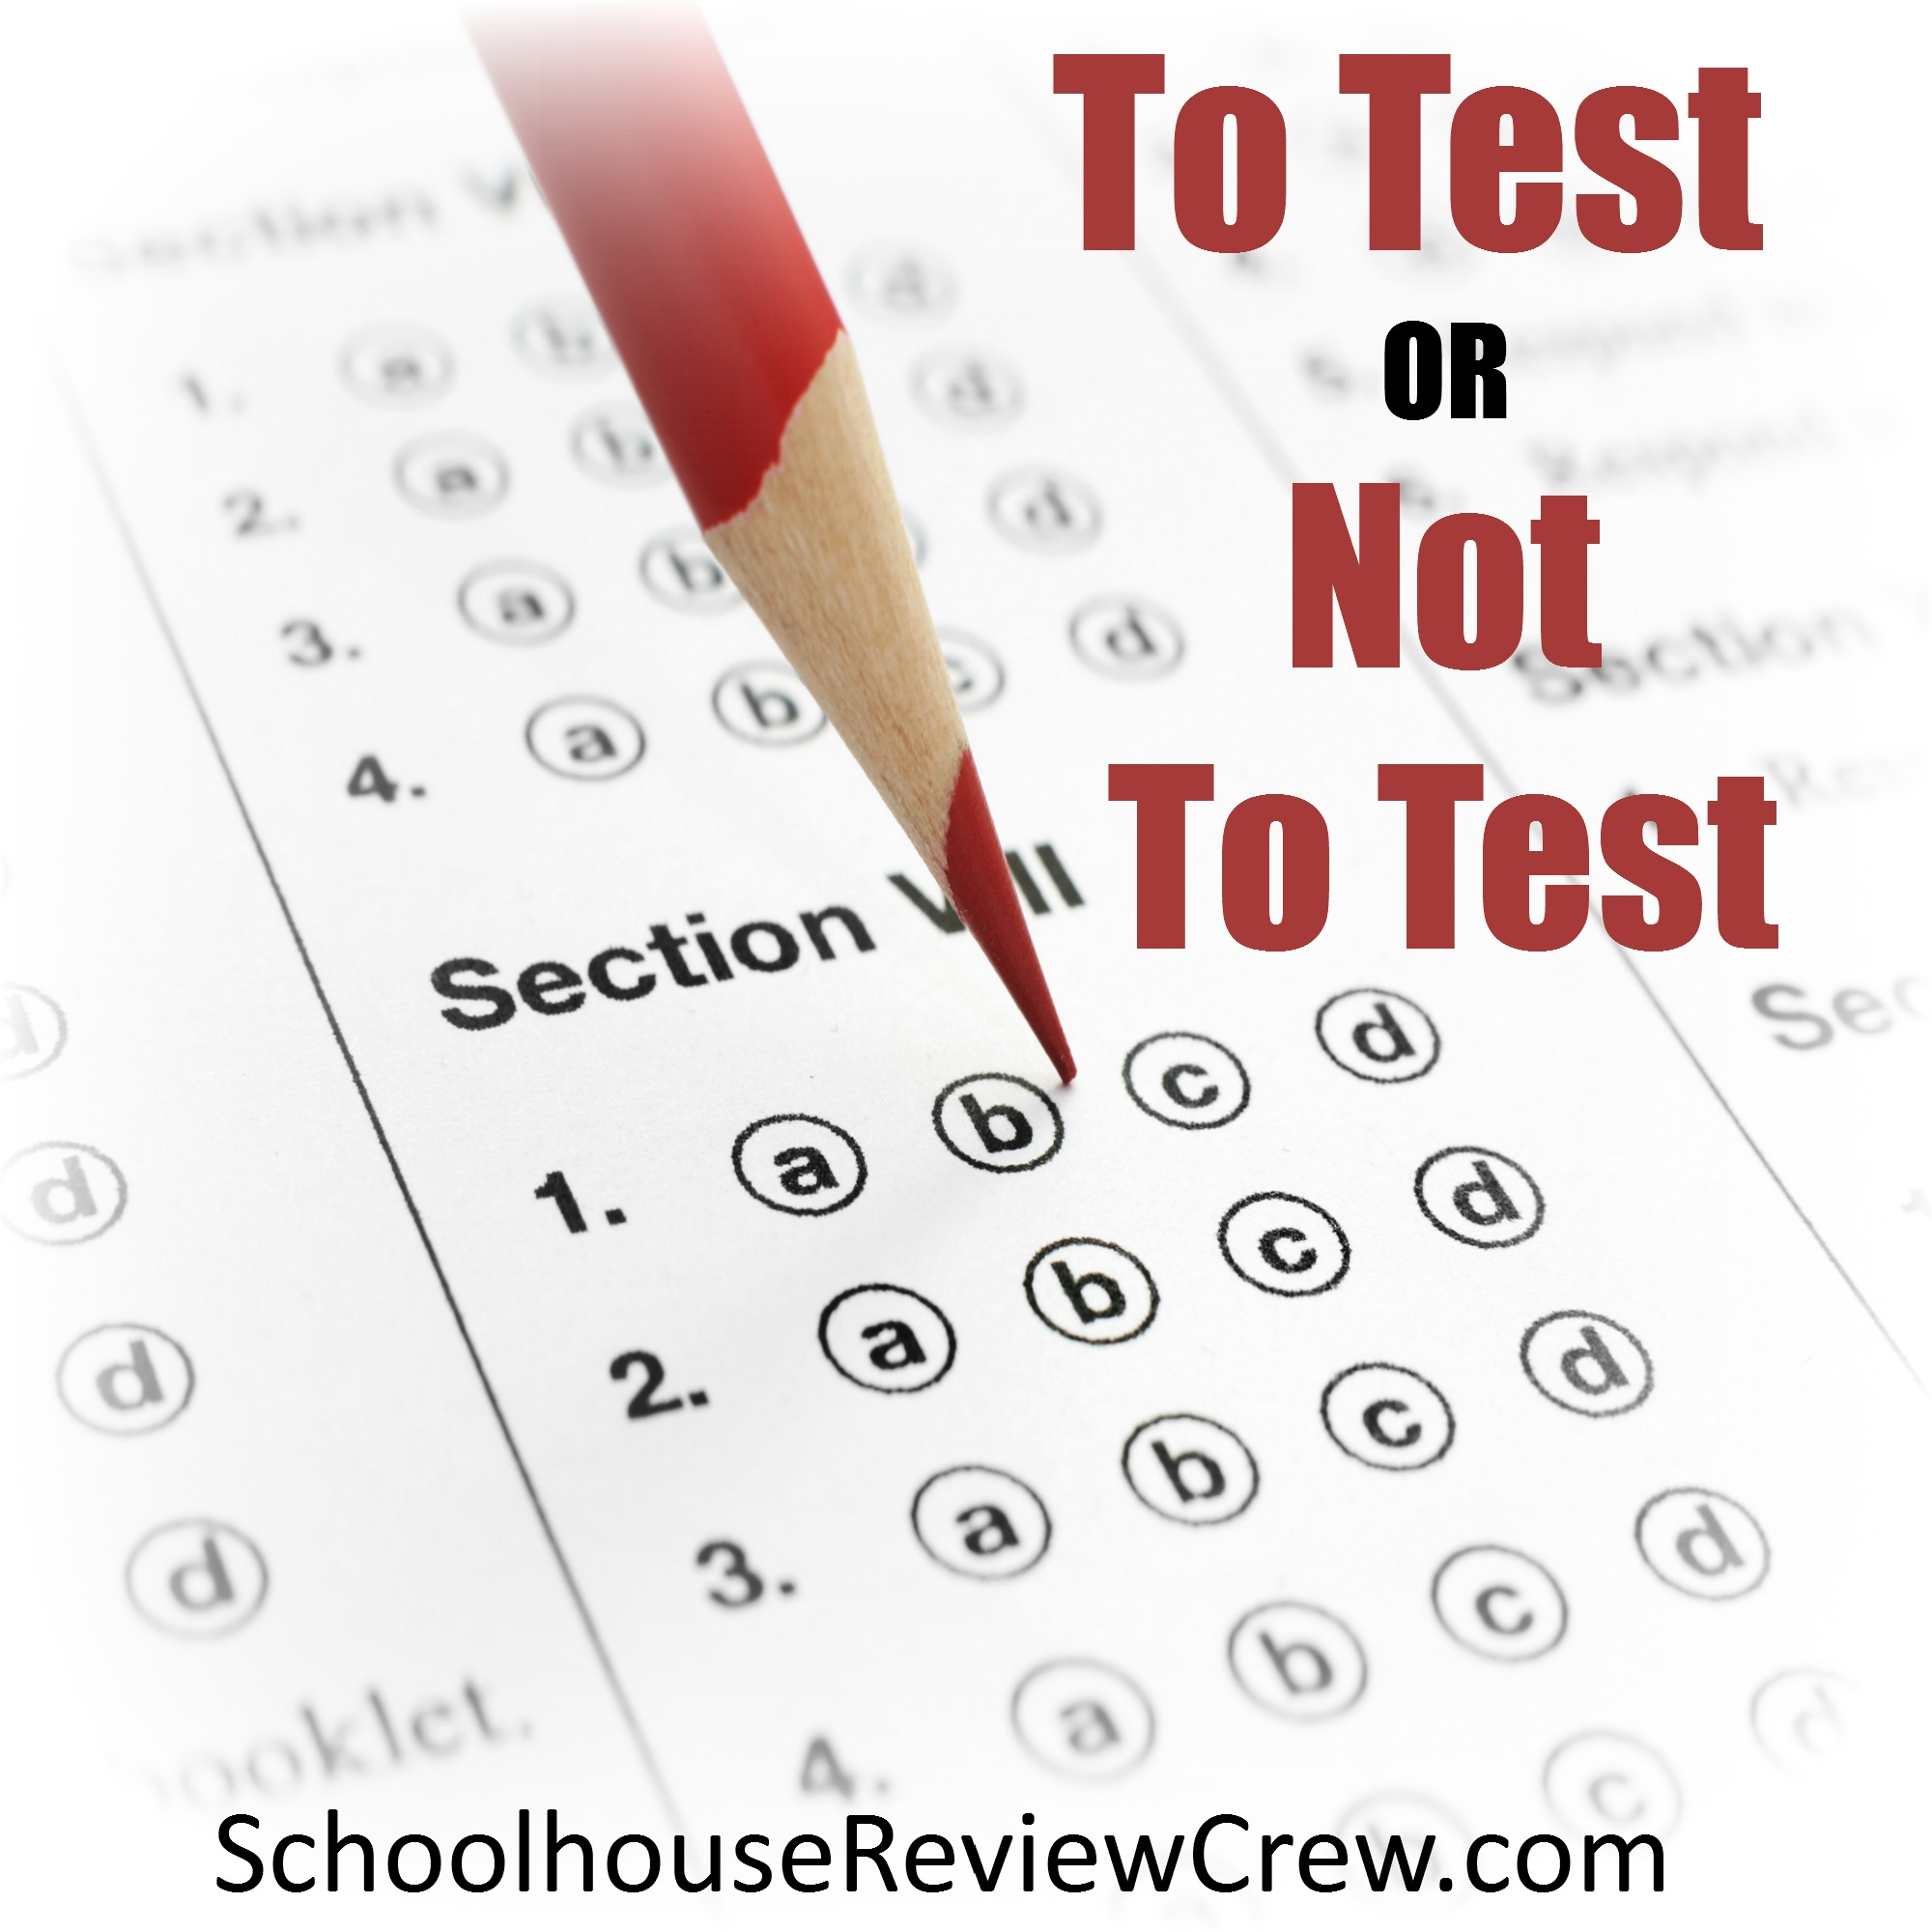 Blog Cruise: To Test or Not to Test